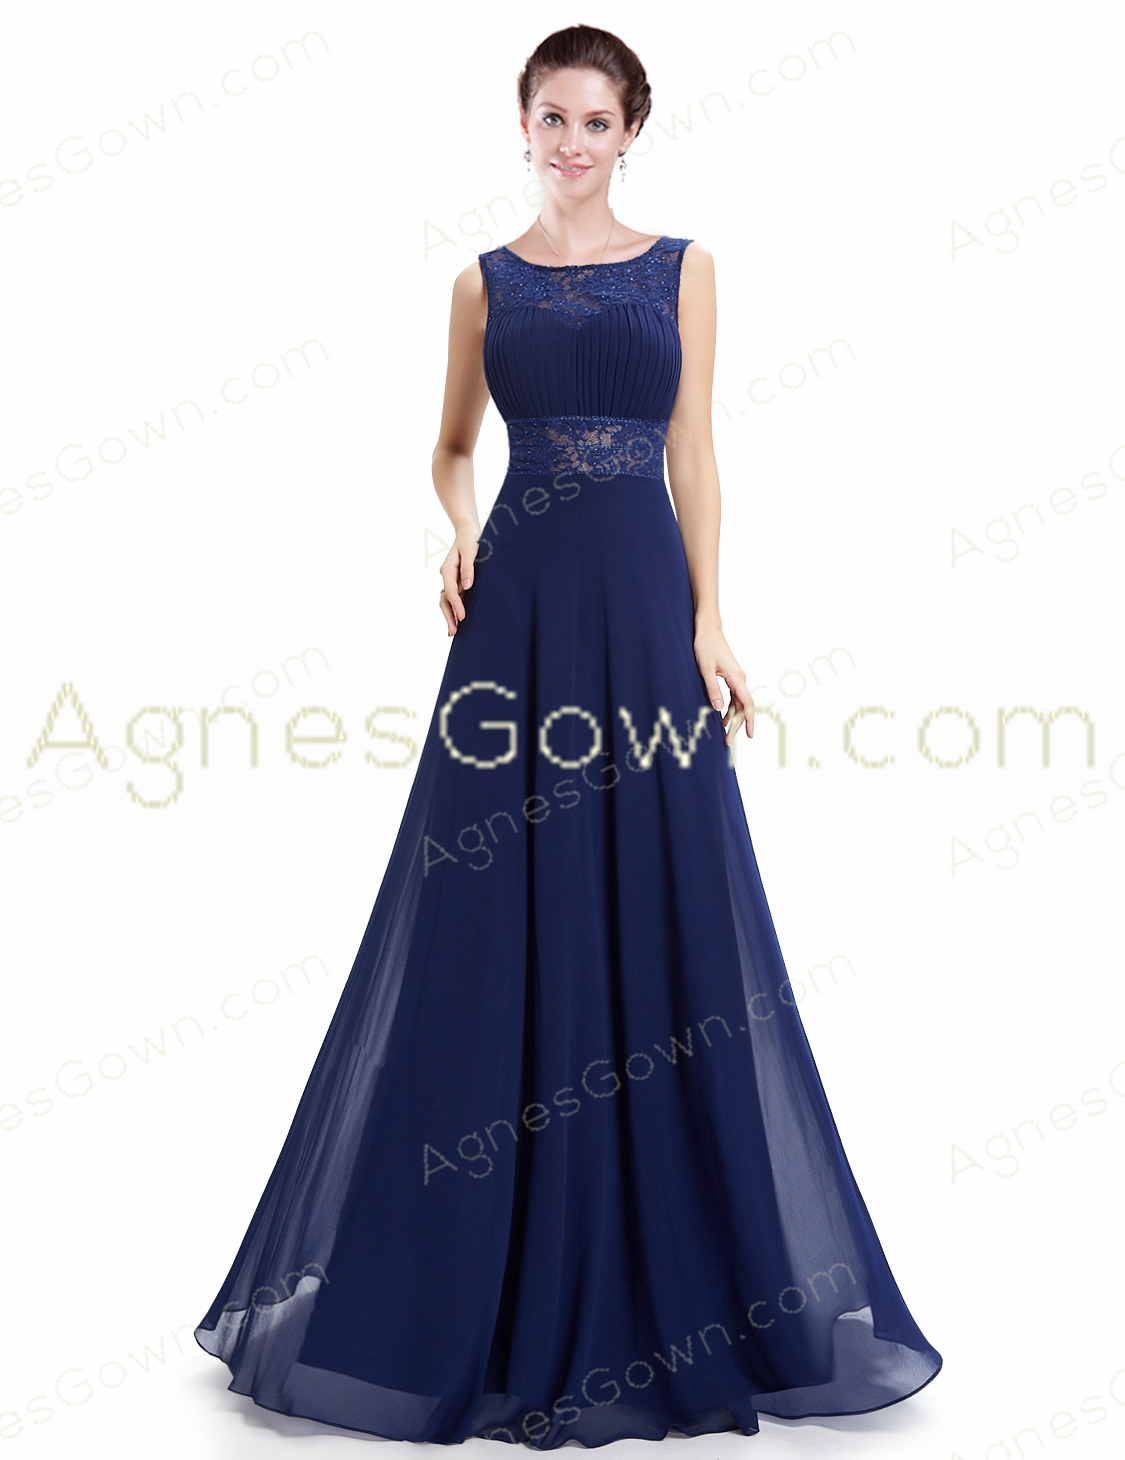 Charming Square Neckline Dark Royal Blue Evening Dress Backless